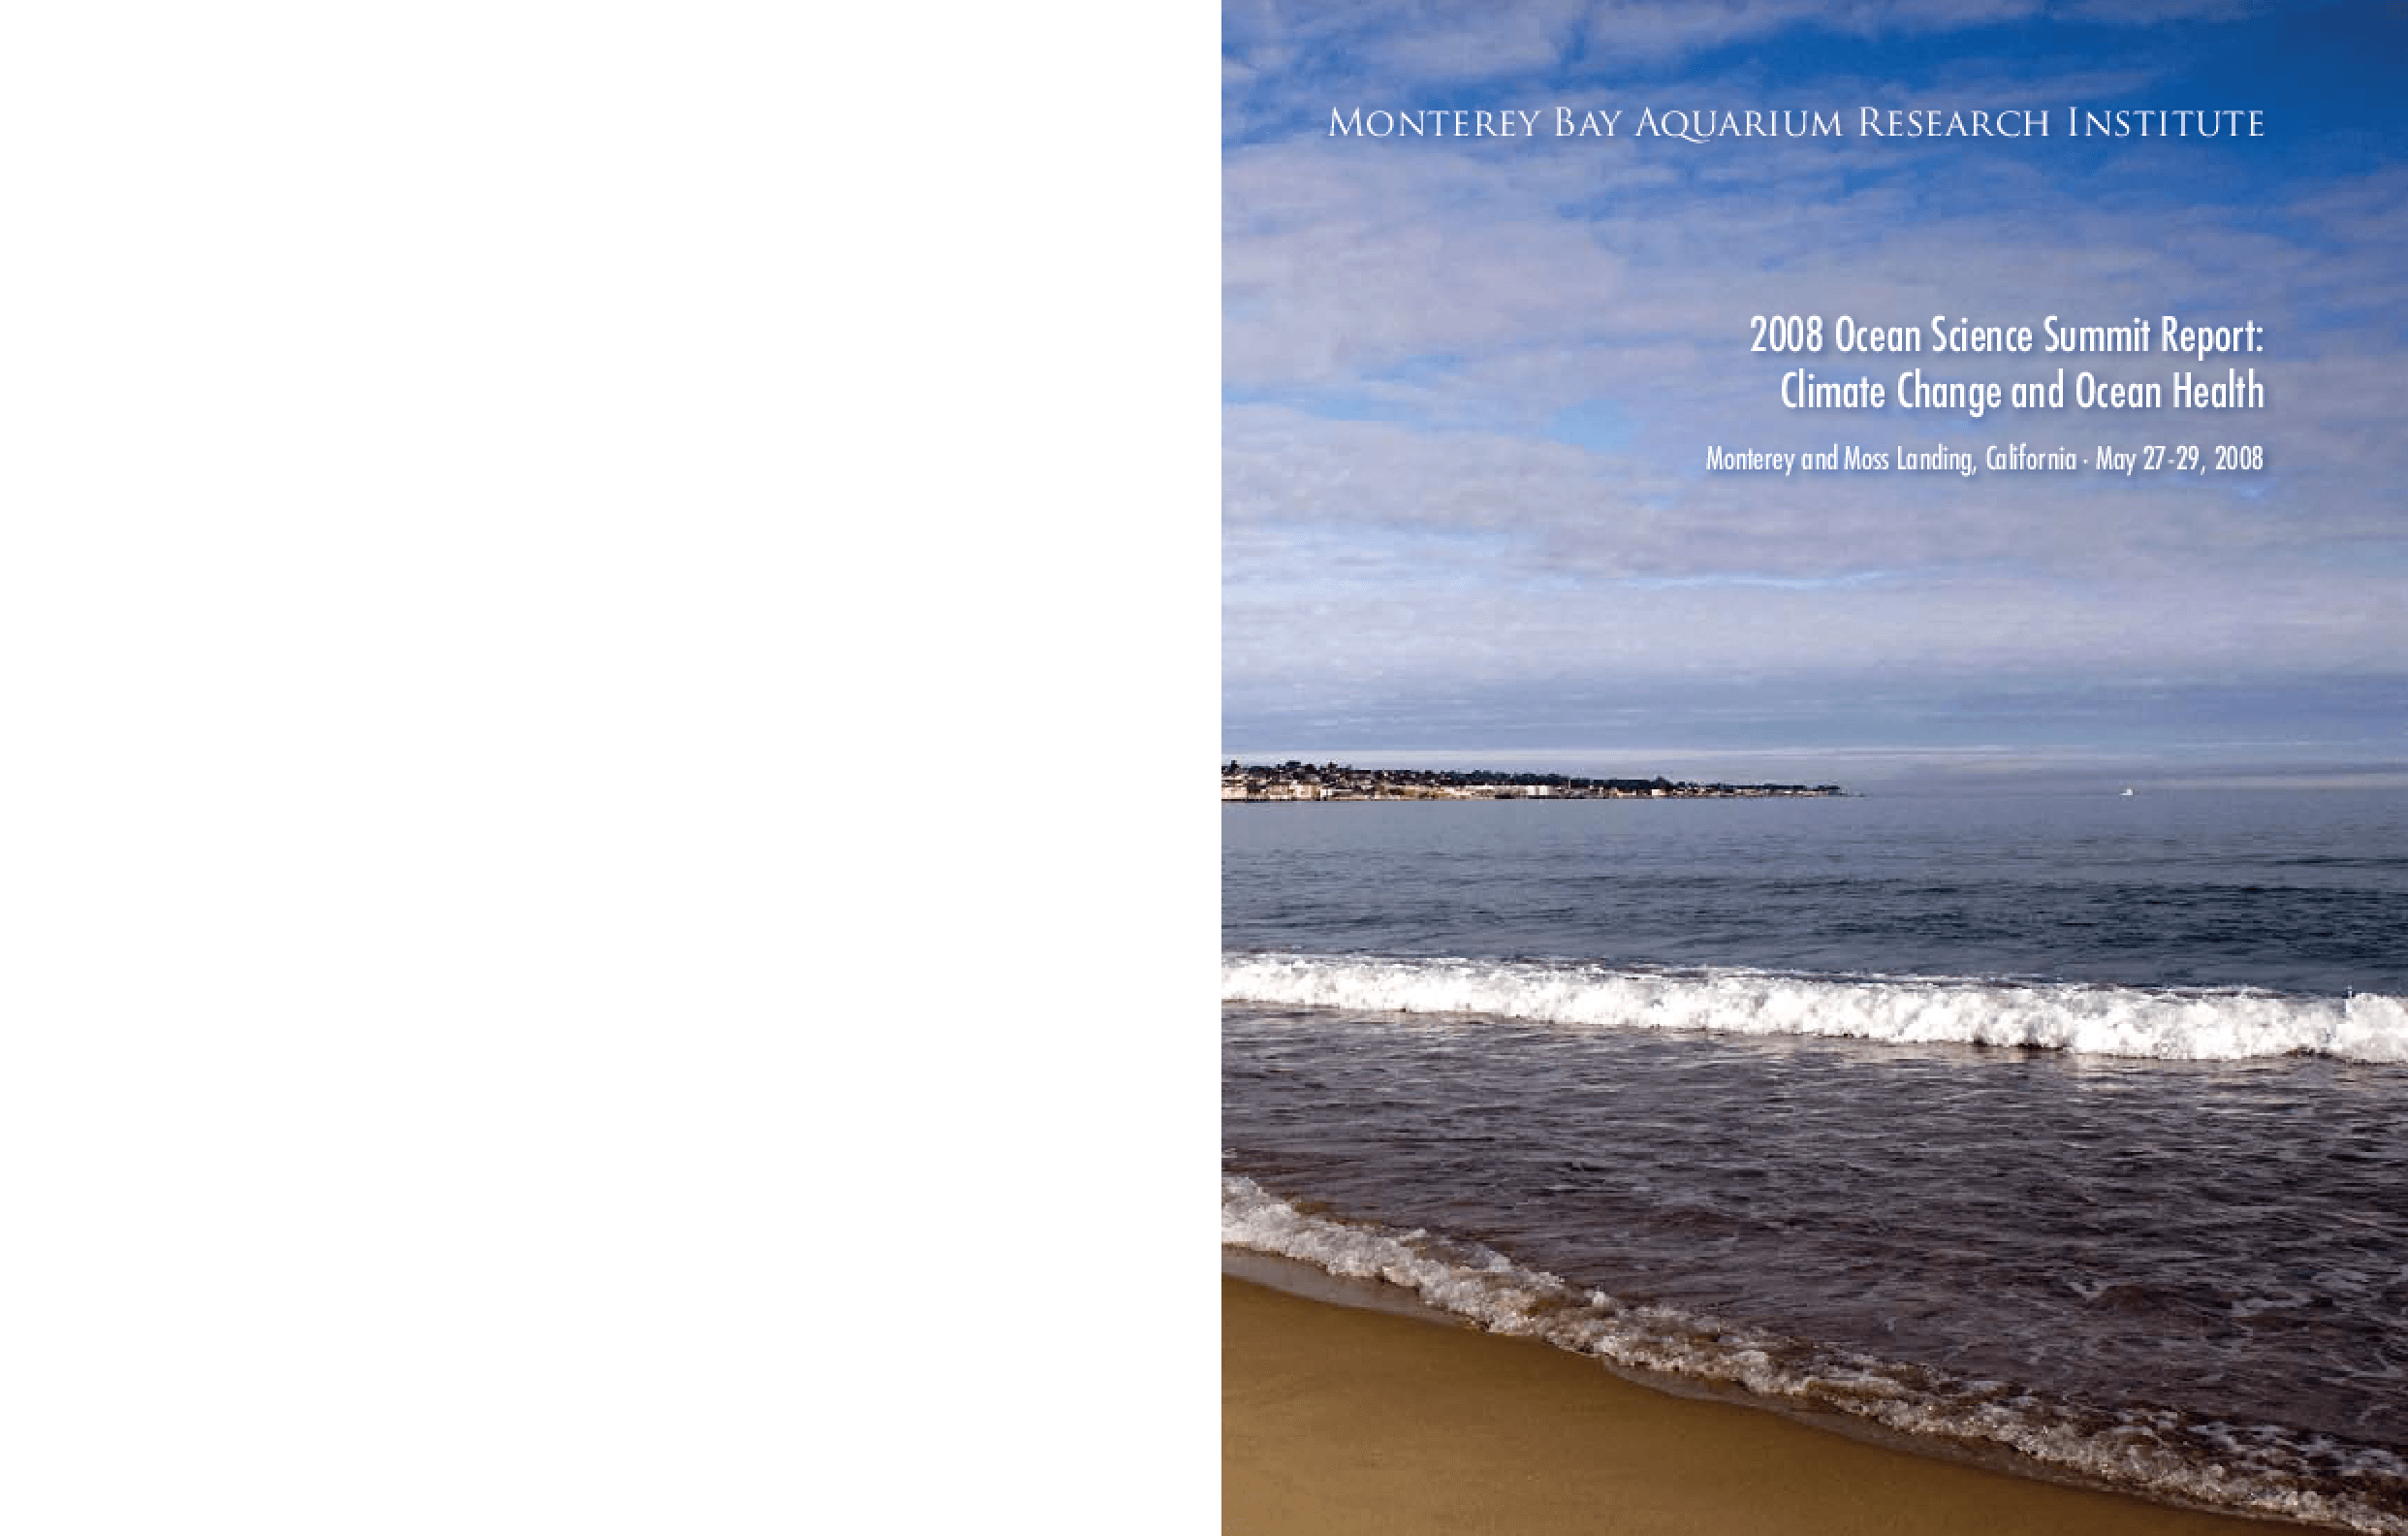 2008 Ocean Science Summit Report: Climate Change and Ocean Health